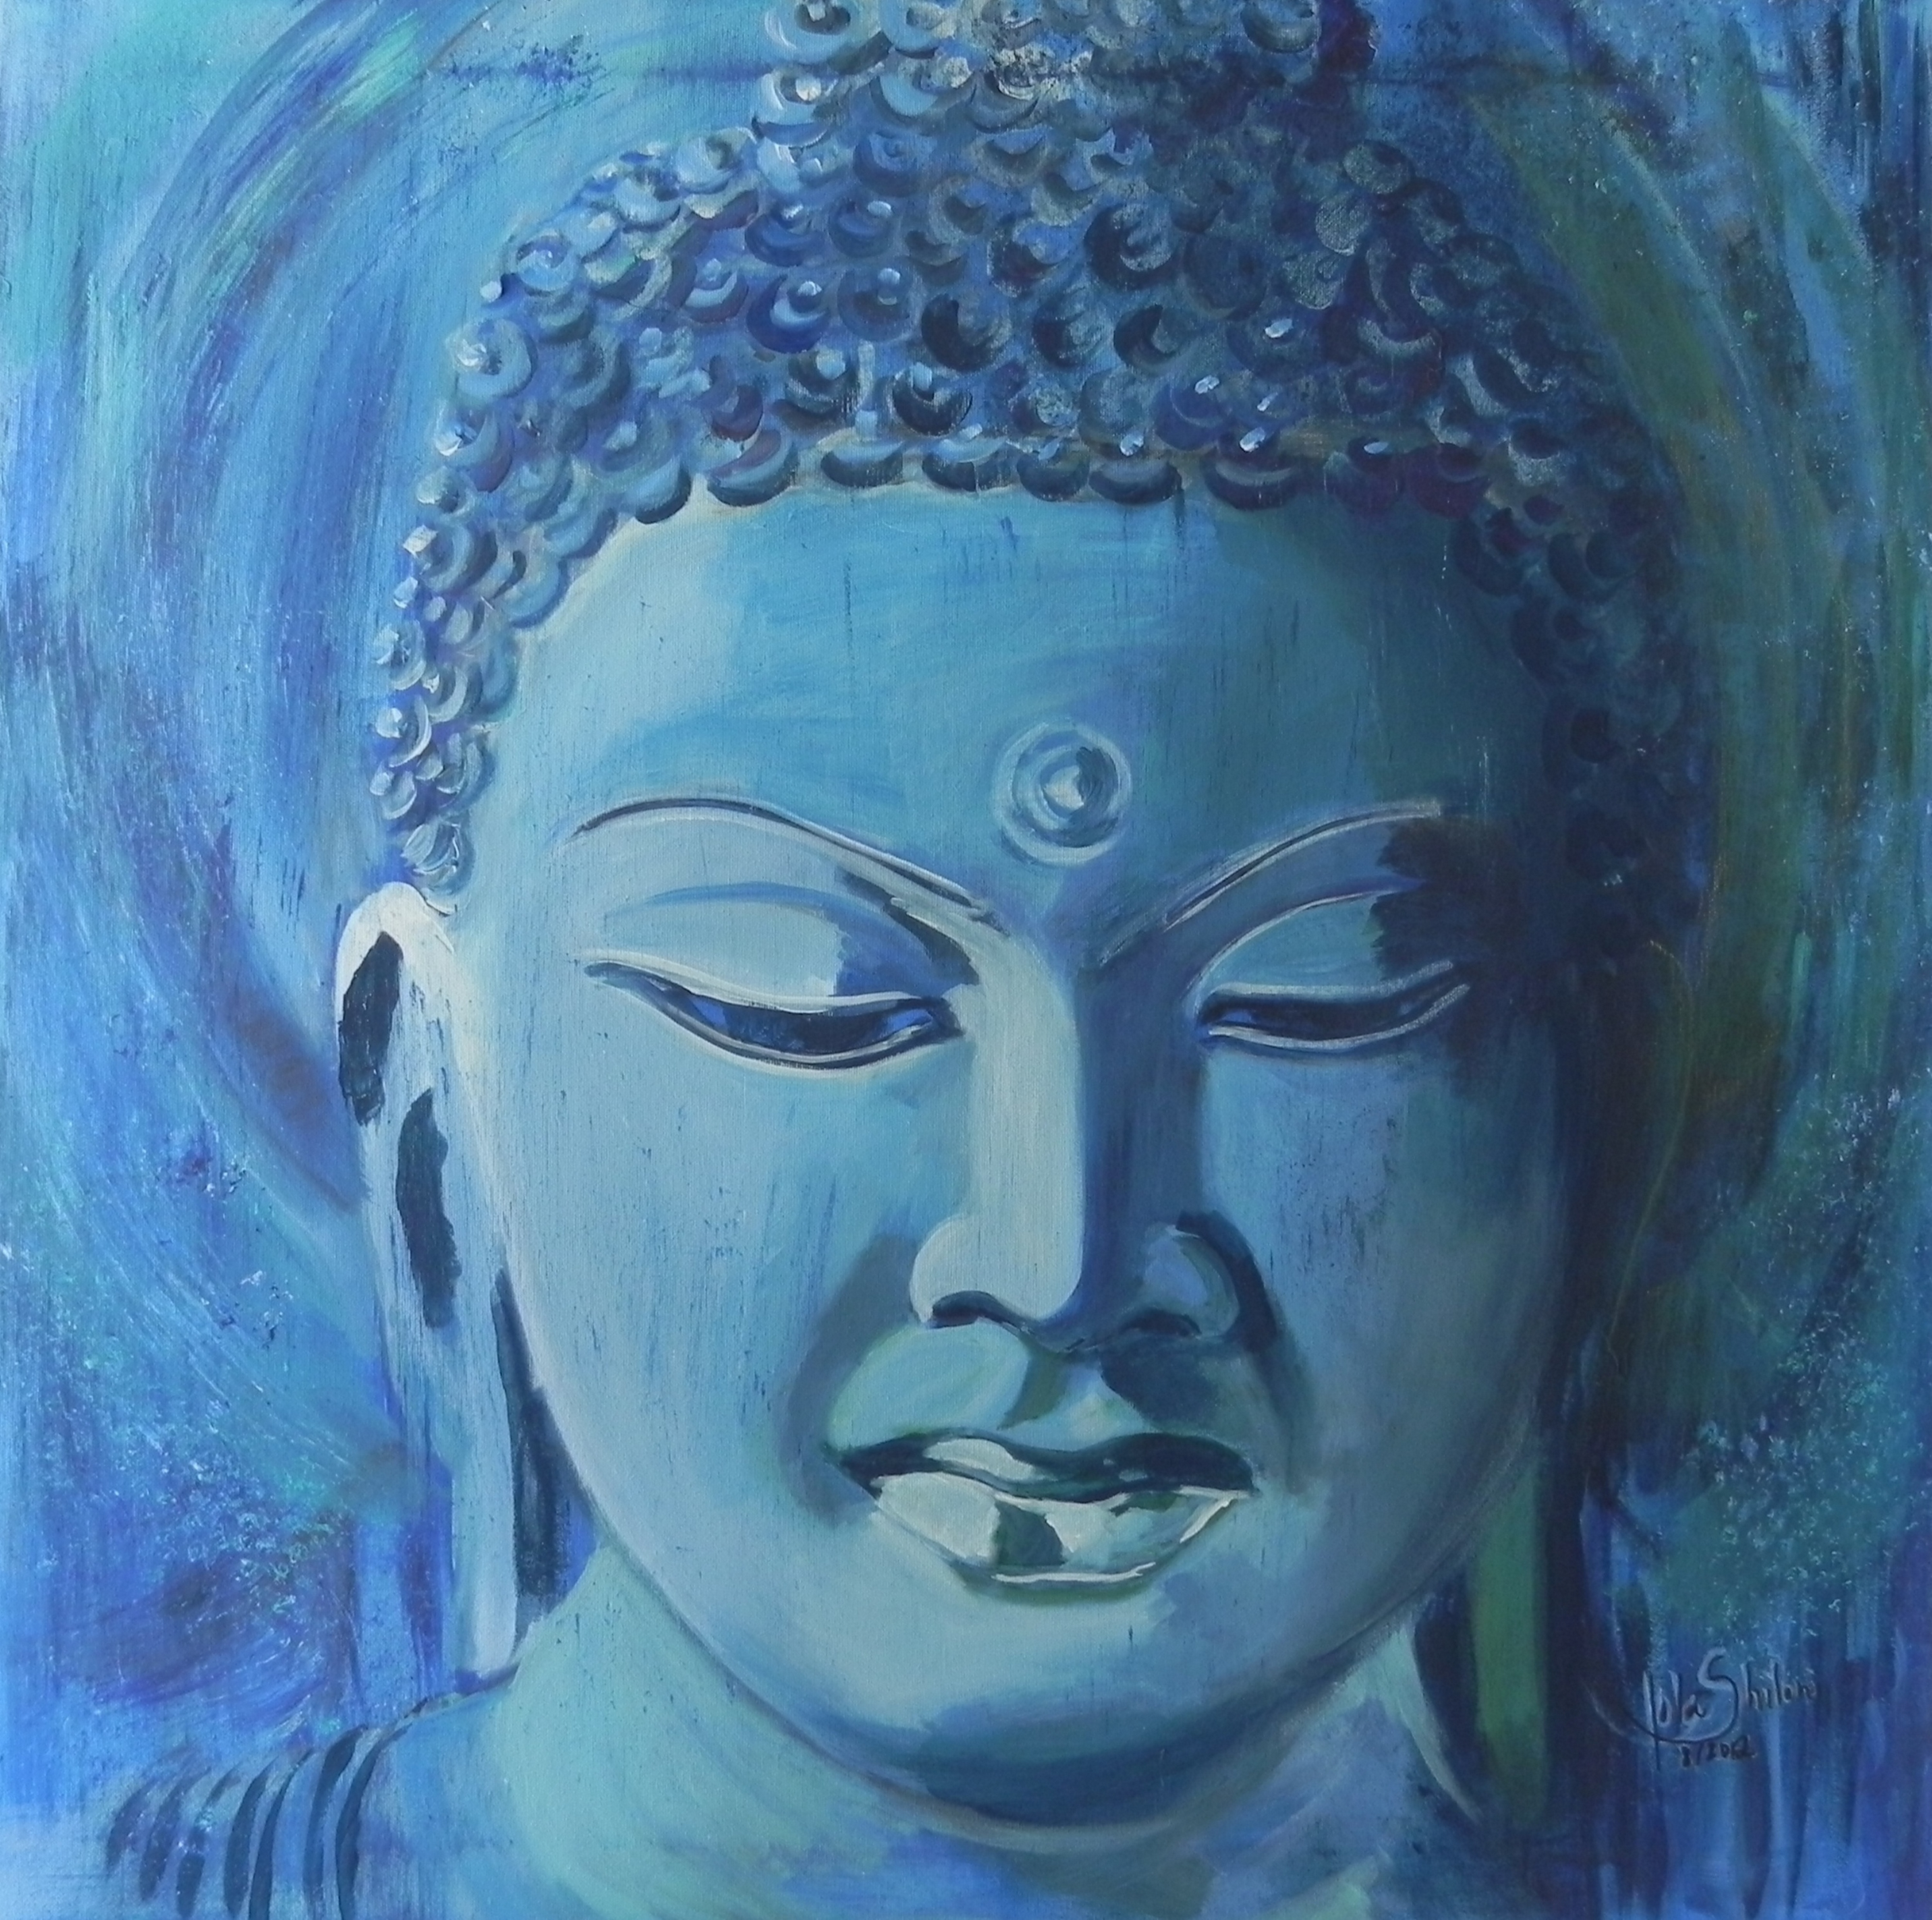 blue mound buddhist dating site Originating in the middle east the hand represents god's protective-hand, and the blue eye on it shields  tibetan buddhist school  famous item found at mound .